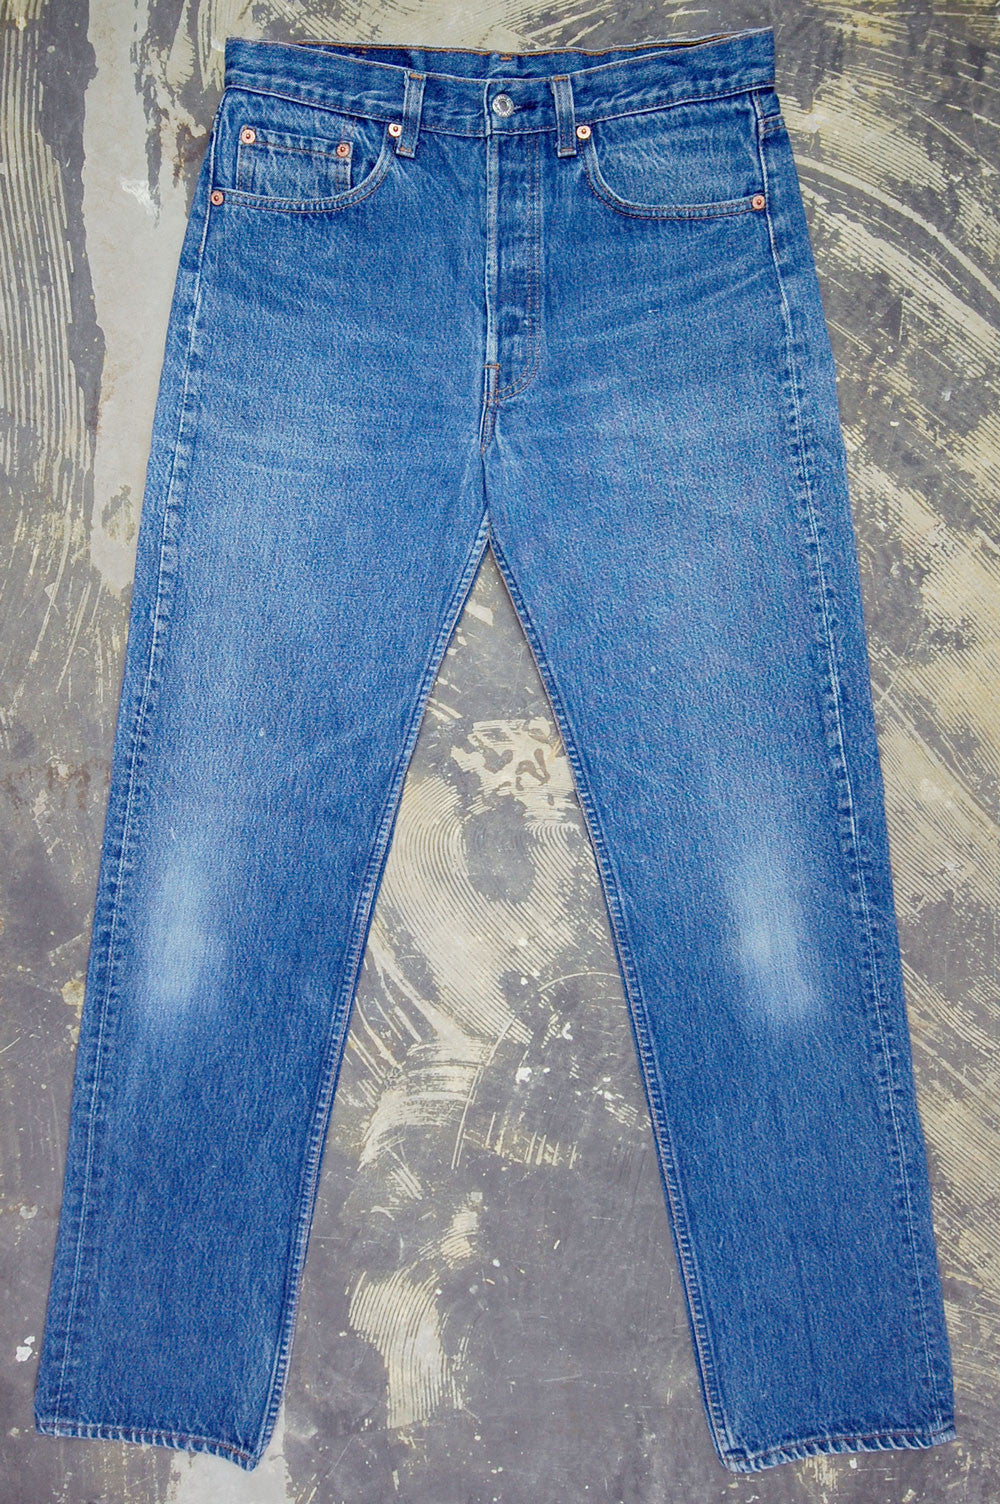 Vintage Levi's 501xx USA Transitional Two Wash Denim Jeans